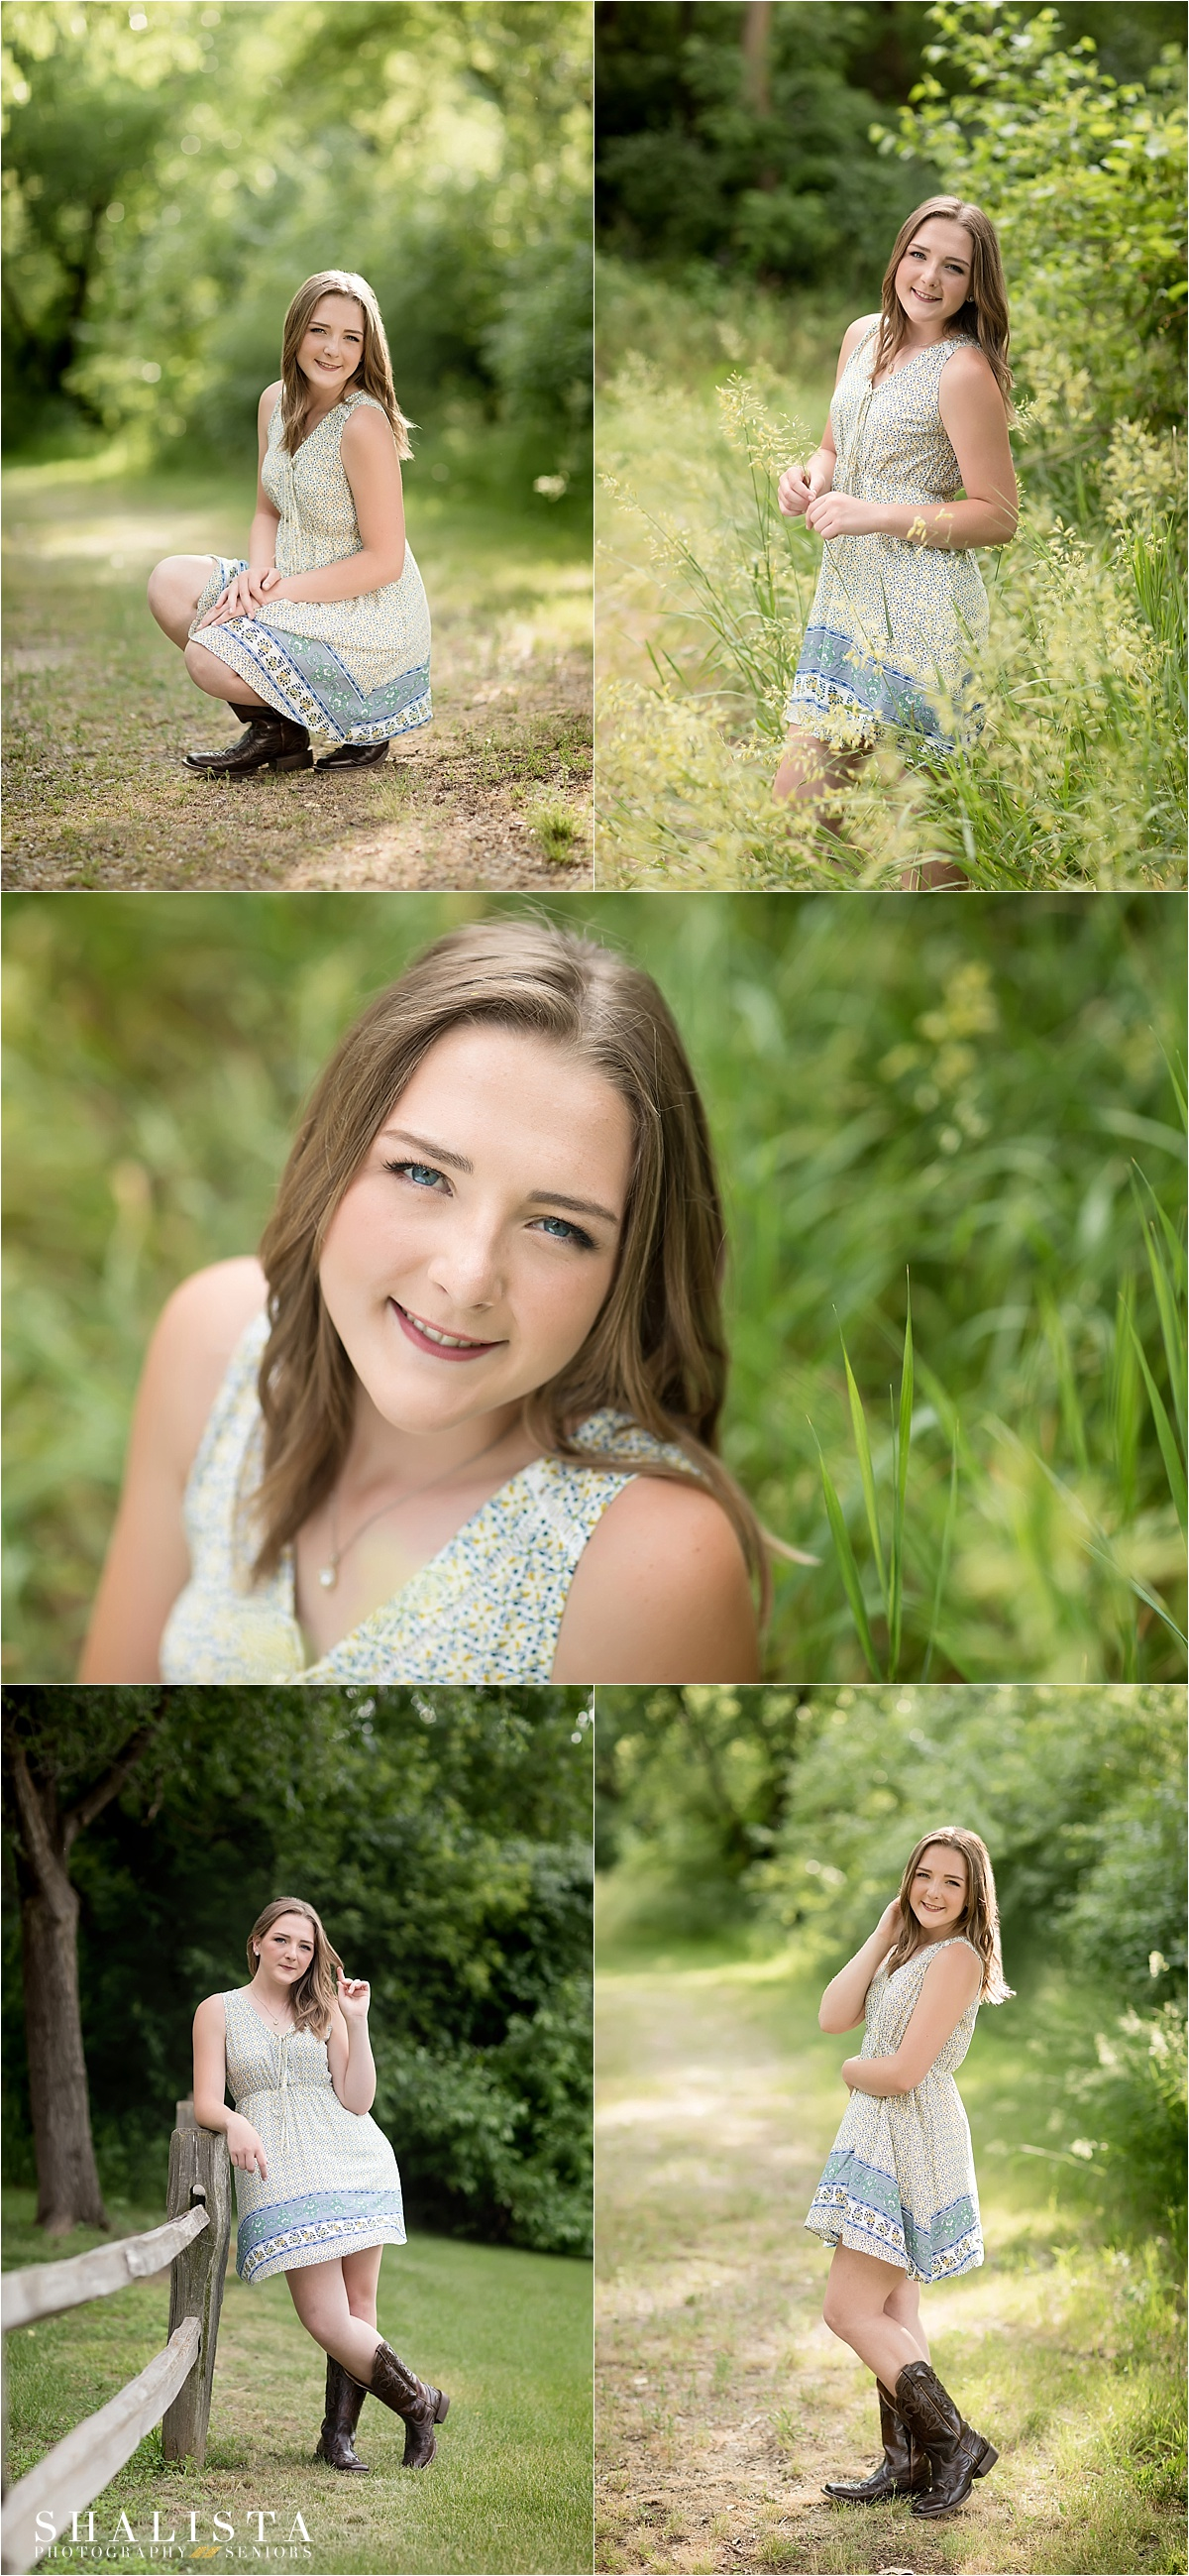 Outdoor Woodsy Senior Pictures | Shalista Photography